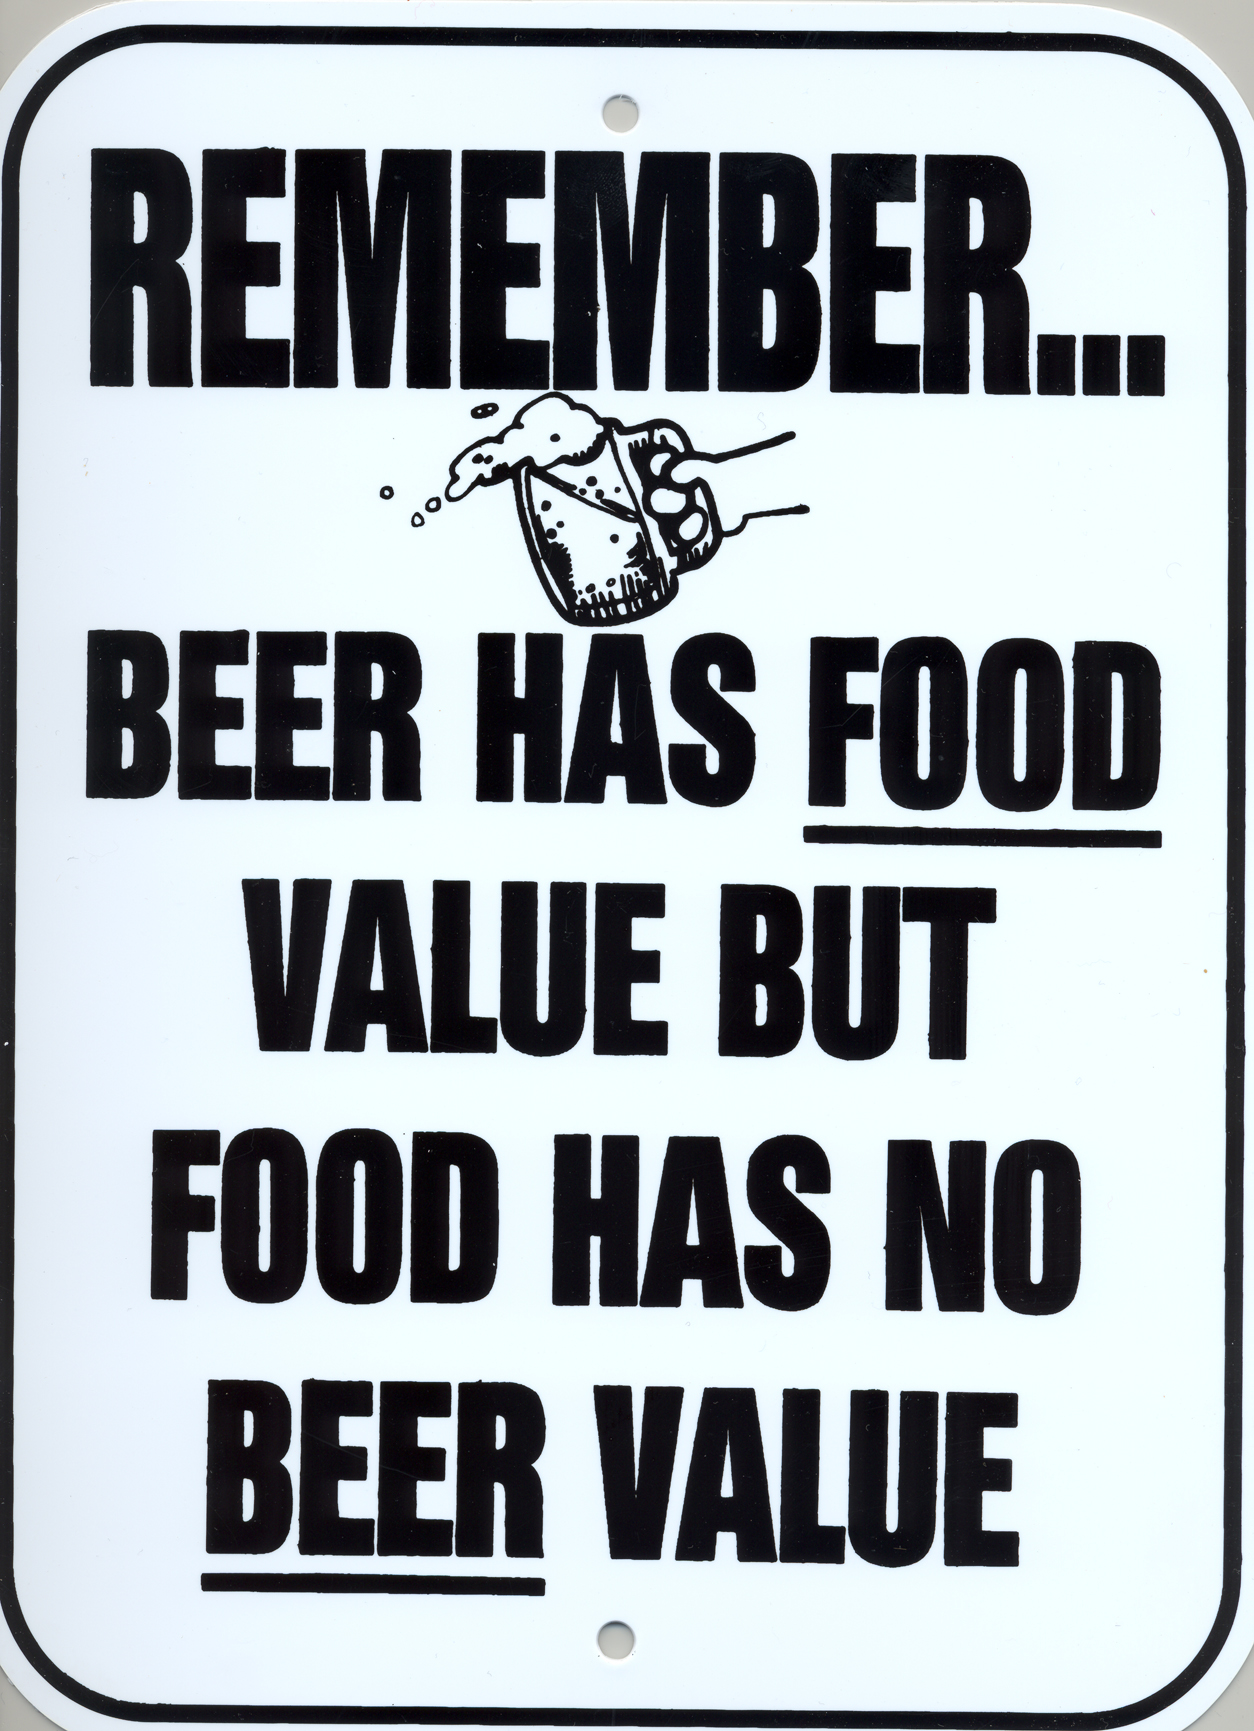 Friday Beer Quotes. QuotesGram